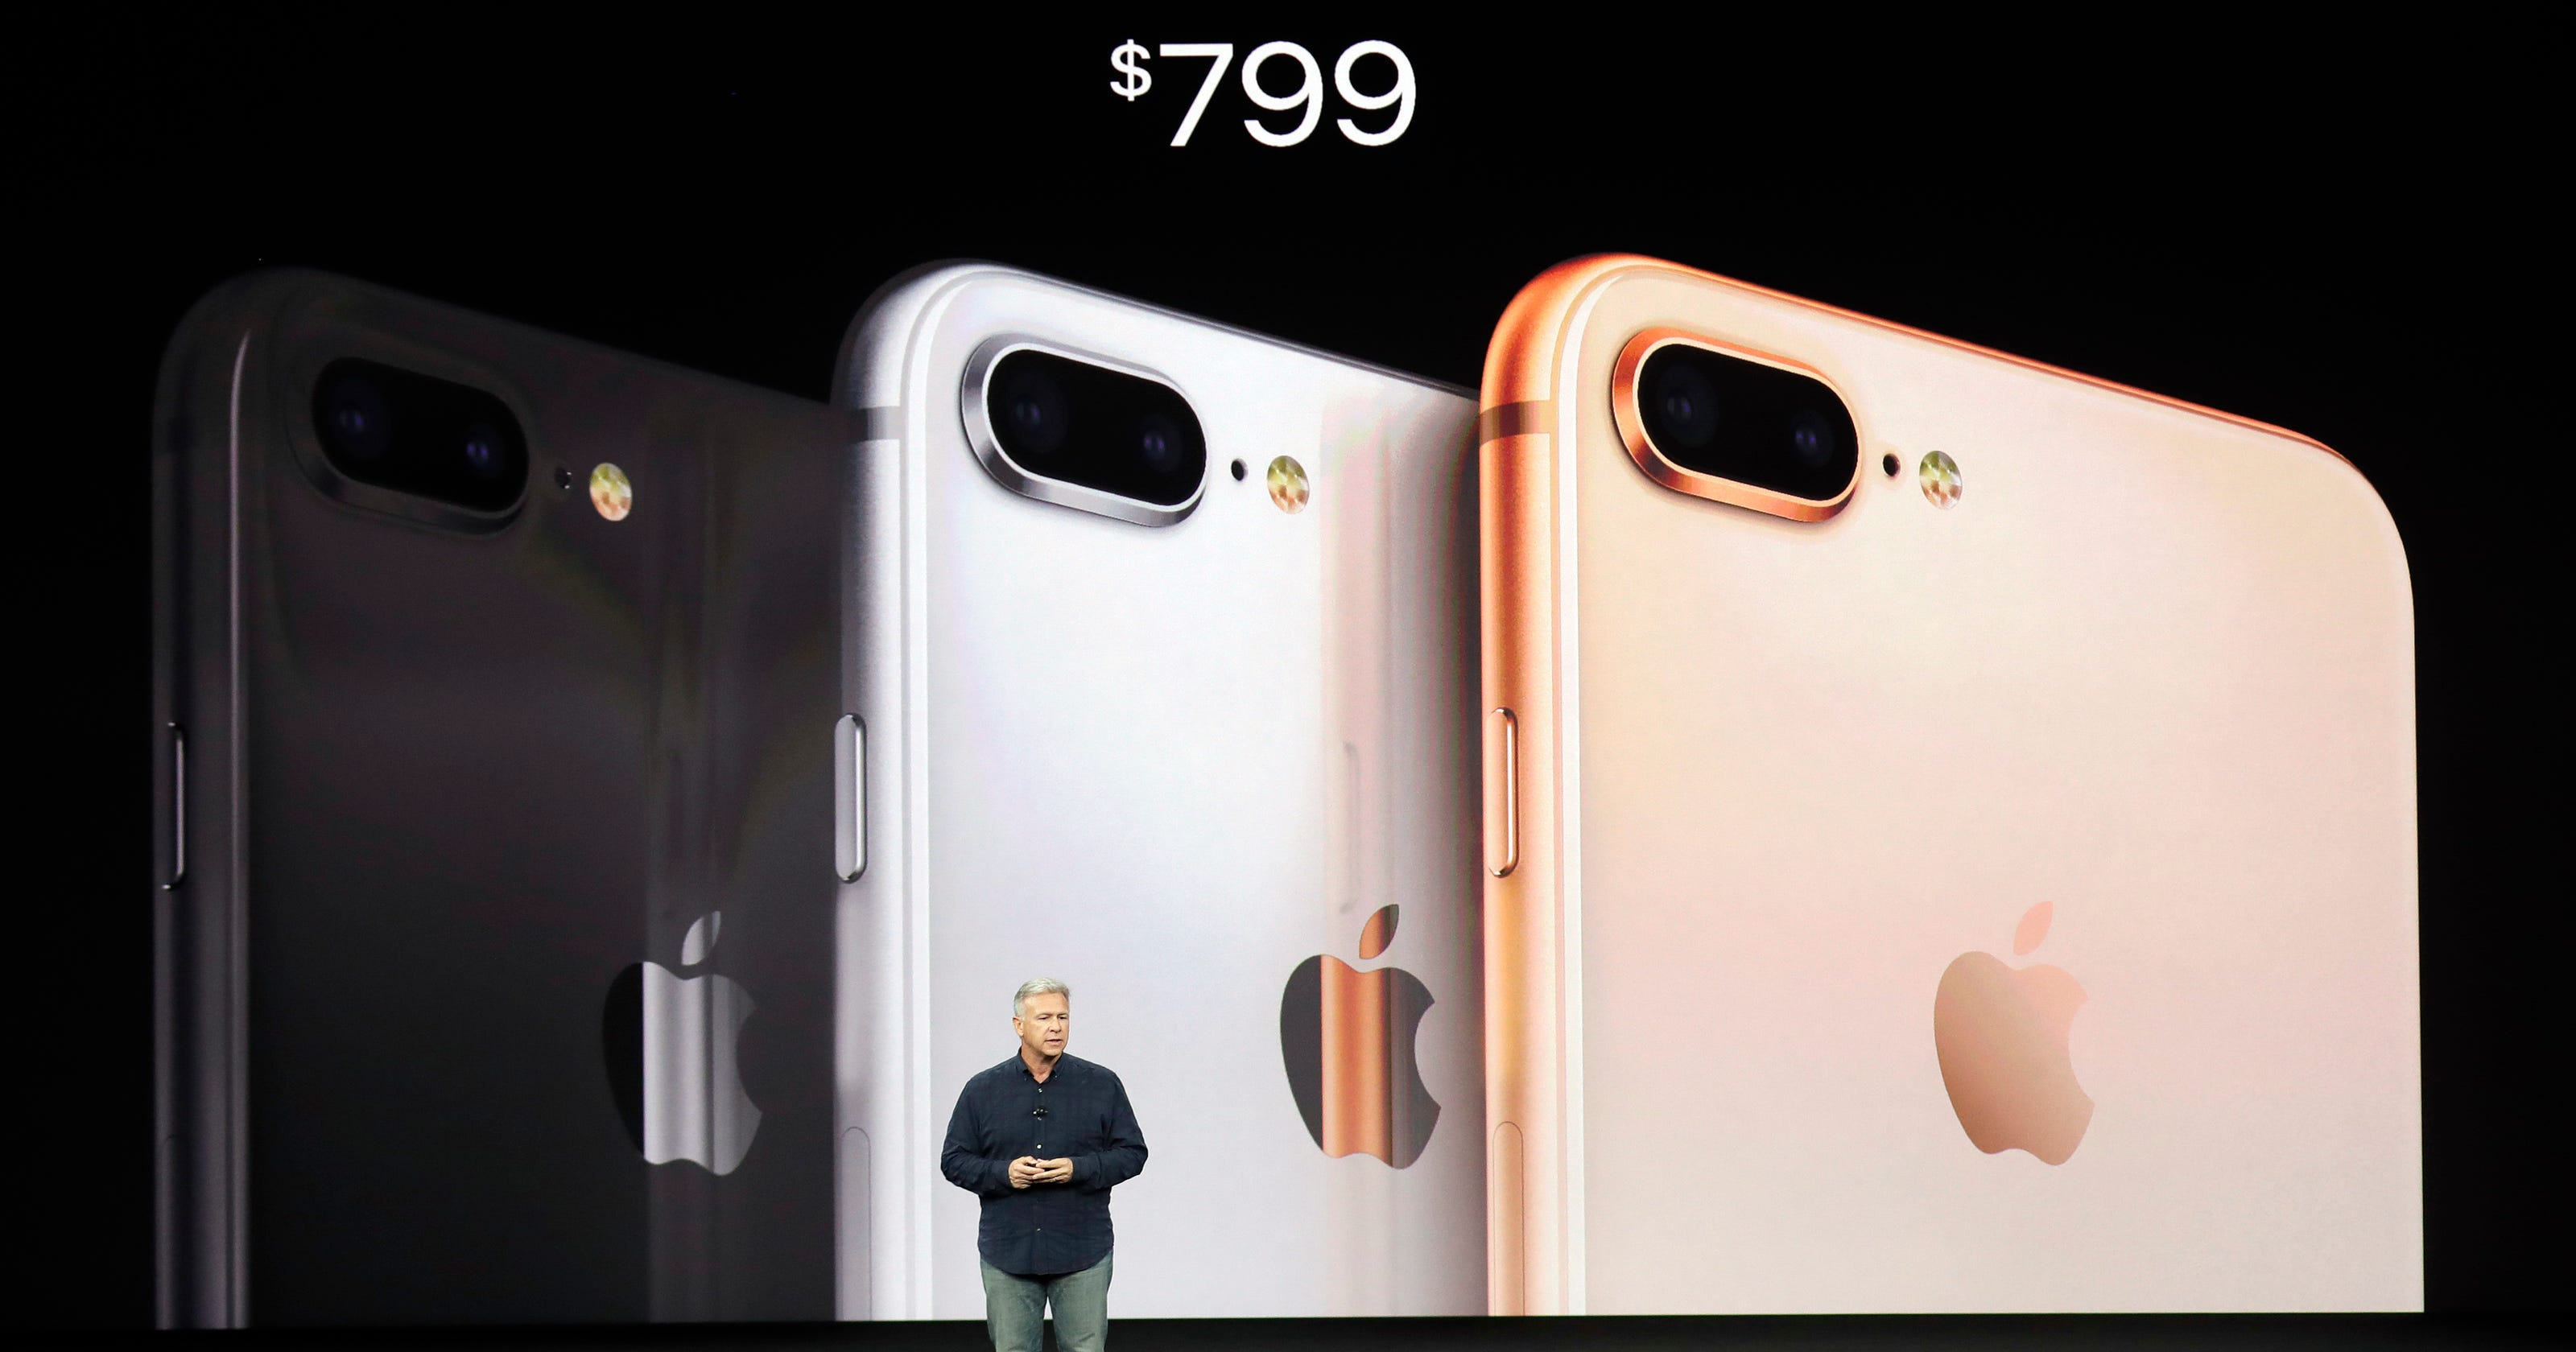 Iphone X Pricing Features Vs Iphone 8 And 8 Plus